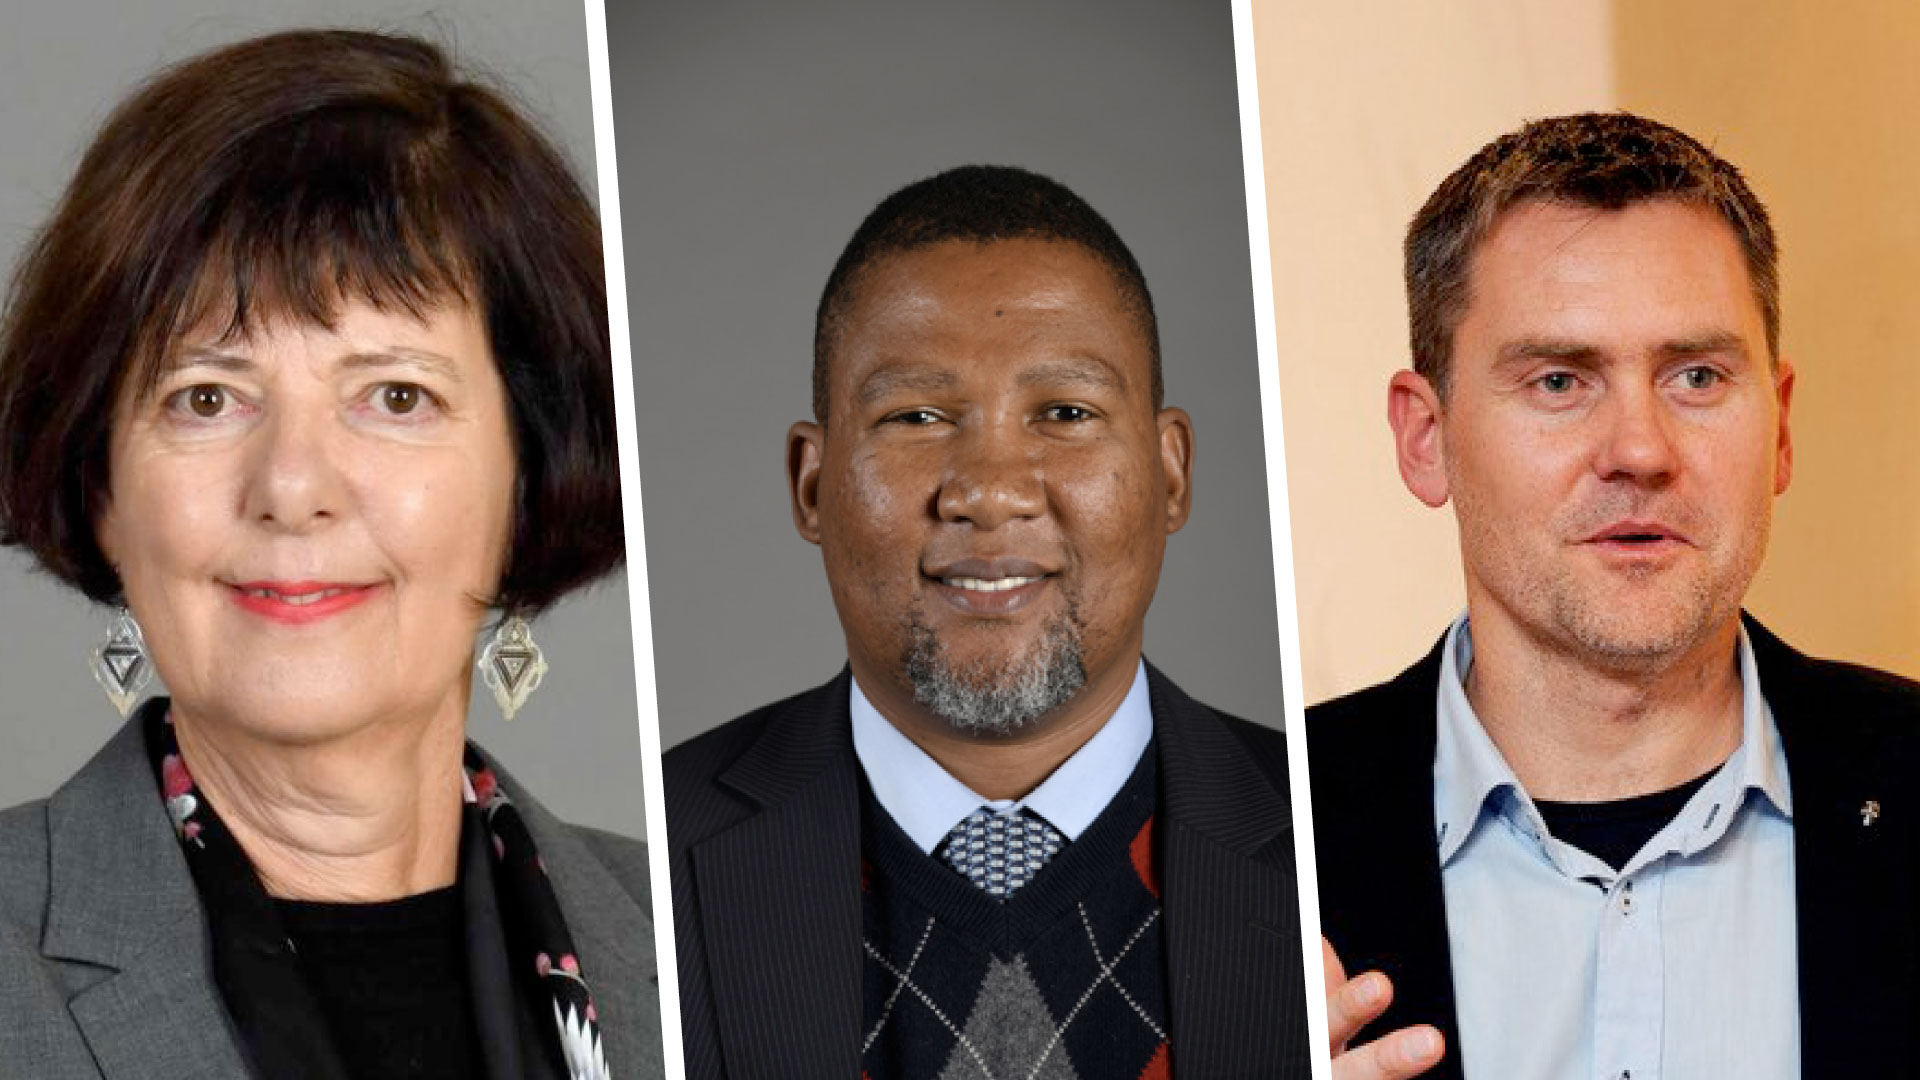 Pictured (from left) are Barbara Creecy, the minister of fisheries, forestry and the environment, Nkosi Zwelivelile Mandela, chairperson of the portfolio committee on agriculture, land and rural development, and Mark Tanton, Founder and Chief Executive Officer of Red Cap Energy. Photo: Supplied.